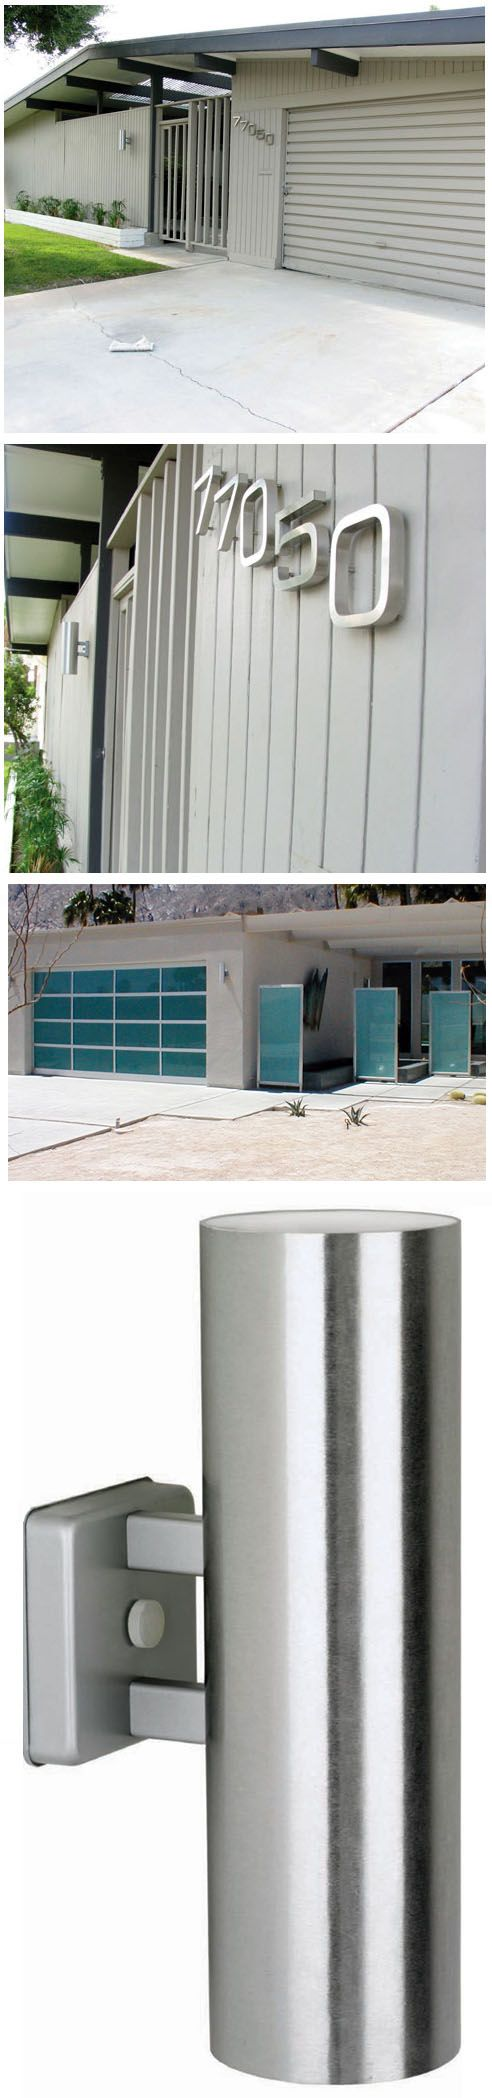 Case Study Sconce with Dual Lighting Modern Outdoor Wall Sconces